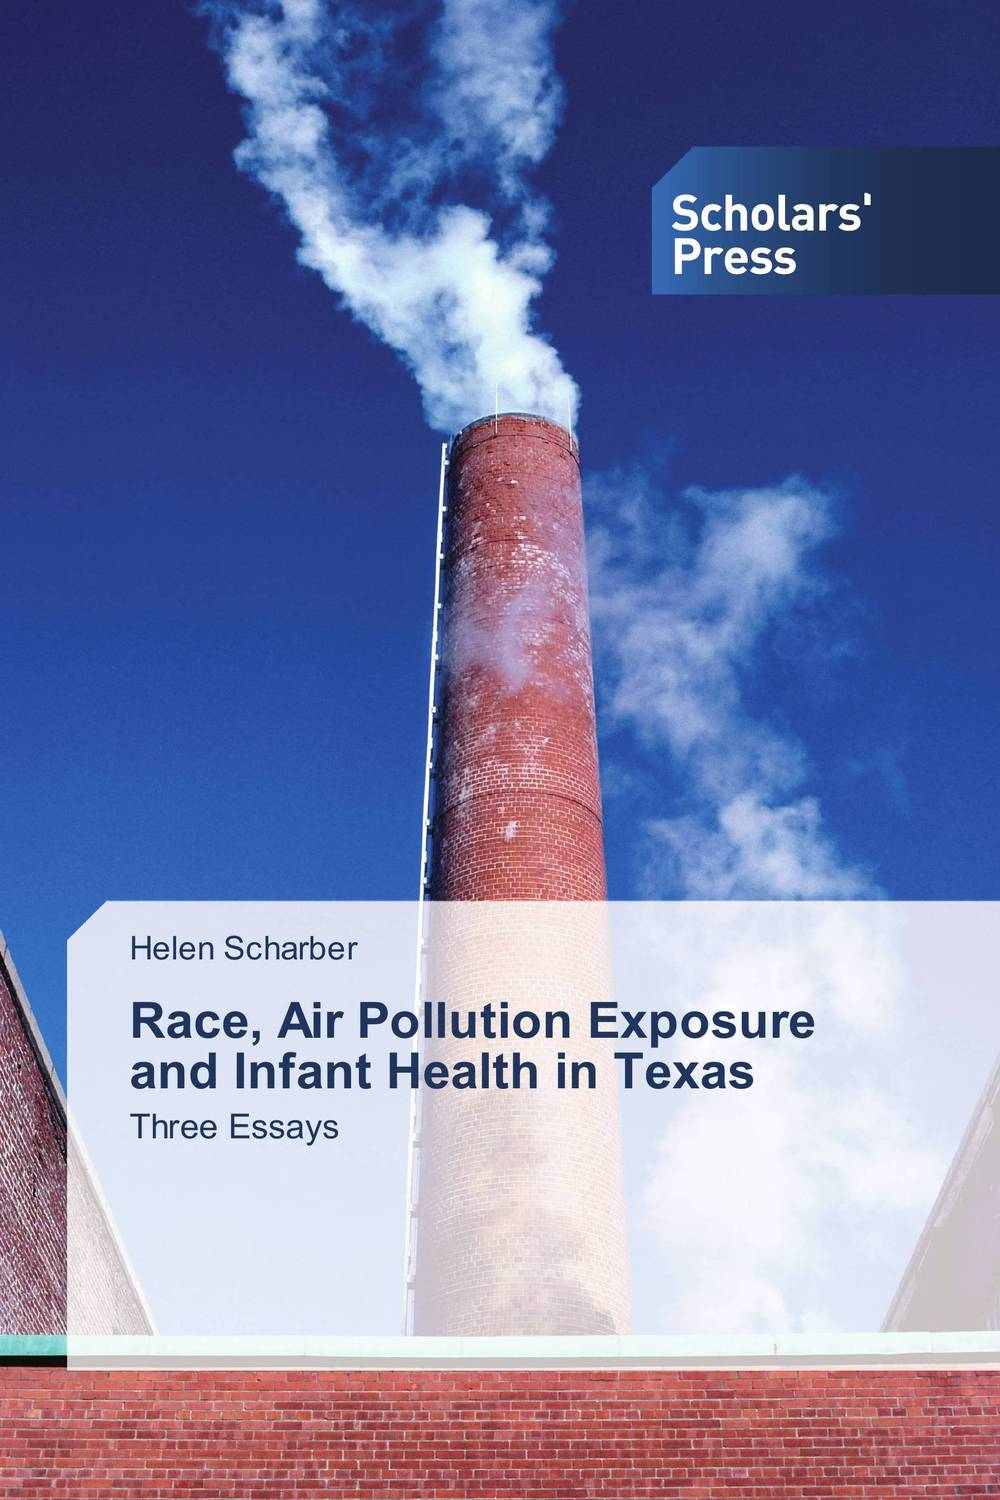 bio 220 indoor air pollution essay Cause and effects of noise pollution were outdoors sound levels with indoor levels of 55-66 some legislation regarding water and air pollution have been.